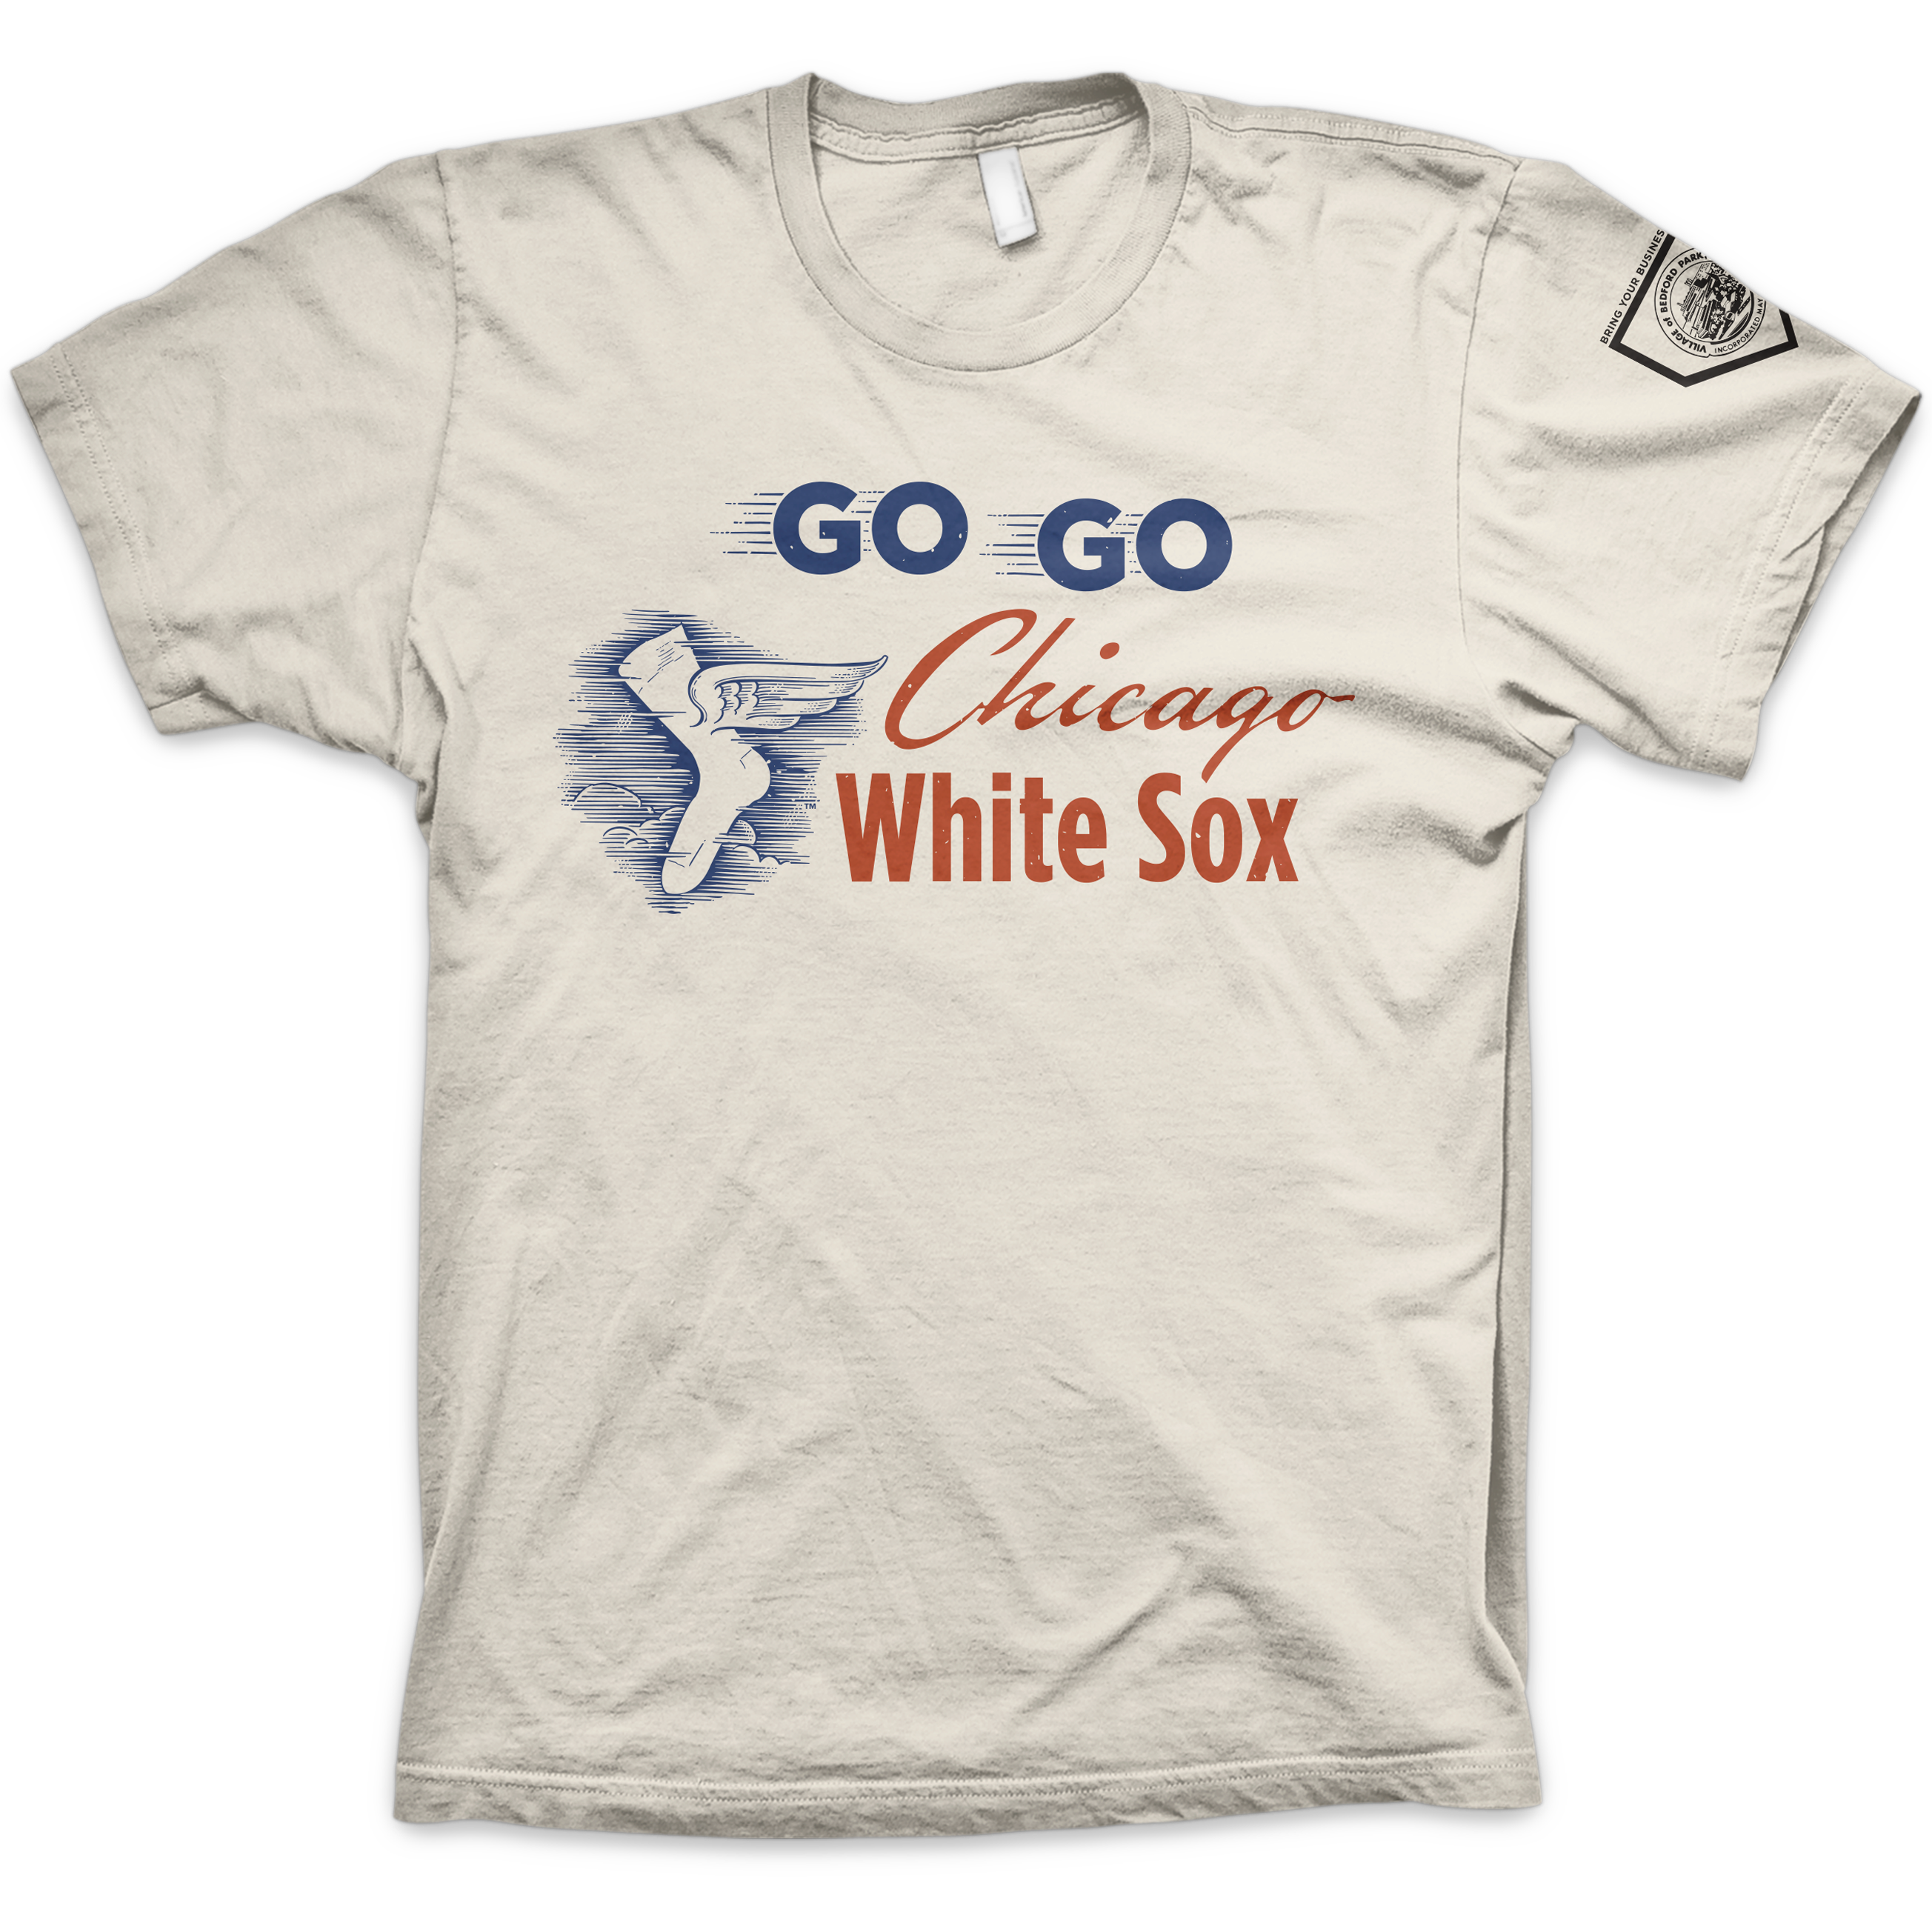 ee645dde Free T-Shirt Thursdays are back, and there are some good options this year.  A nice-looking Go-Go White Sox ...